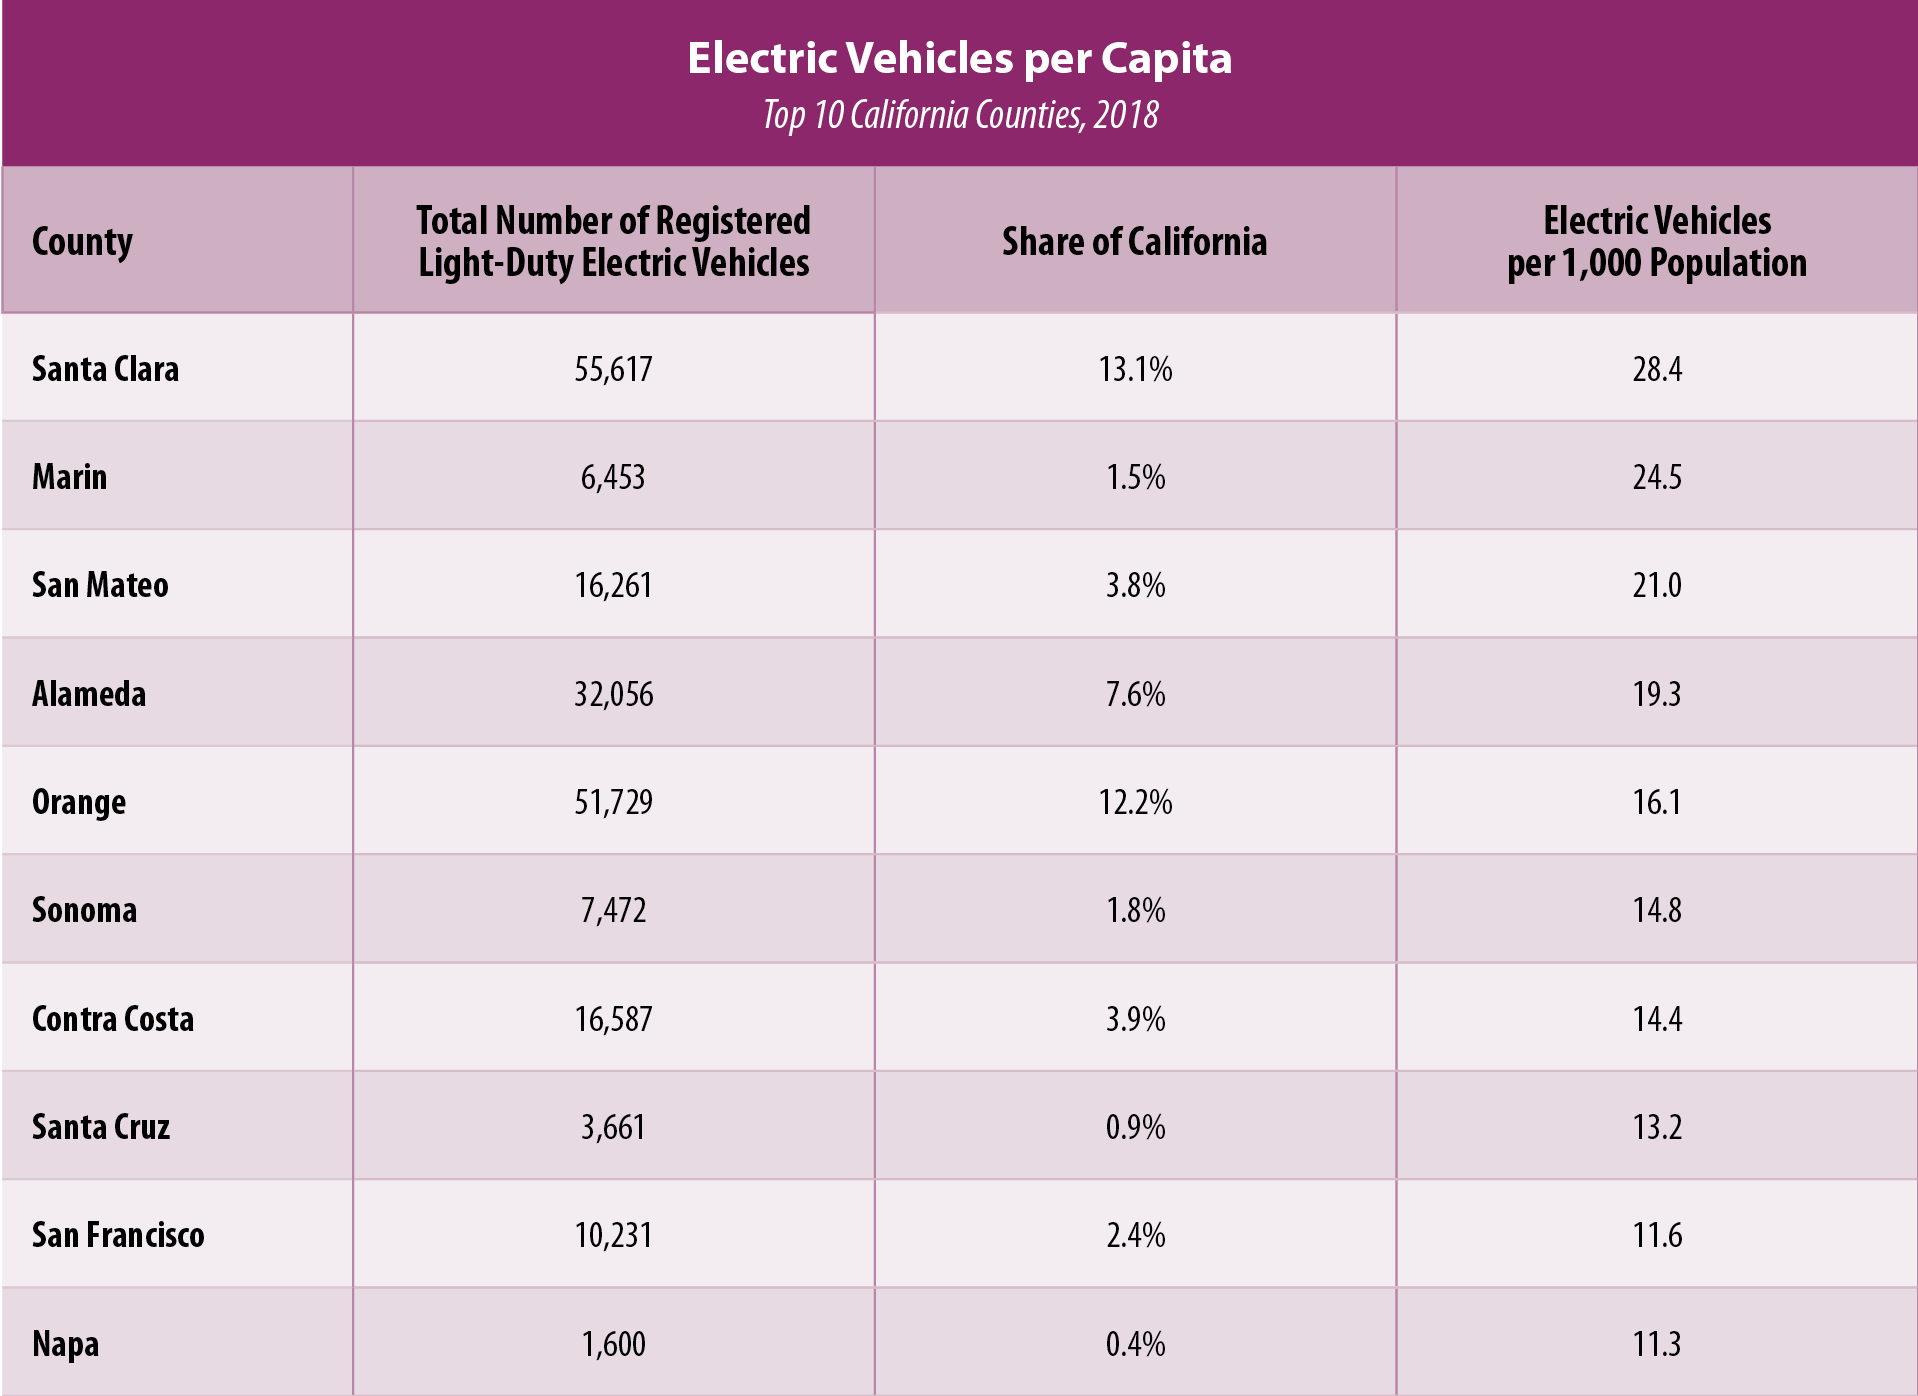 Table 1: Electric Vehicles per Capita